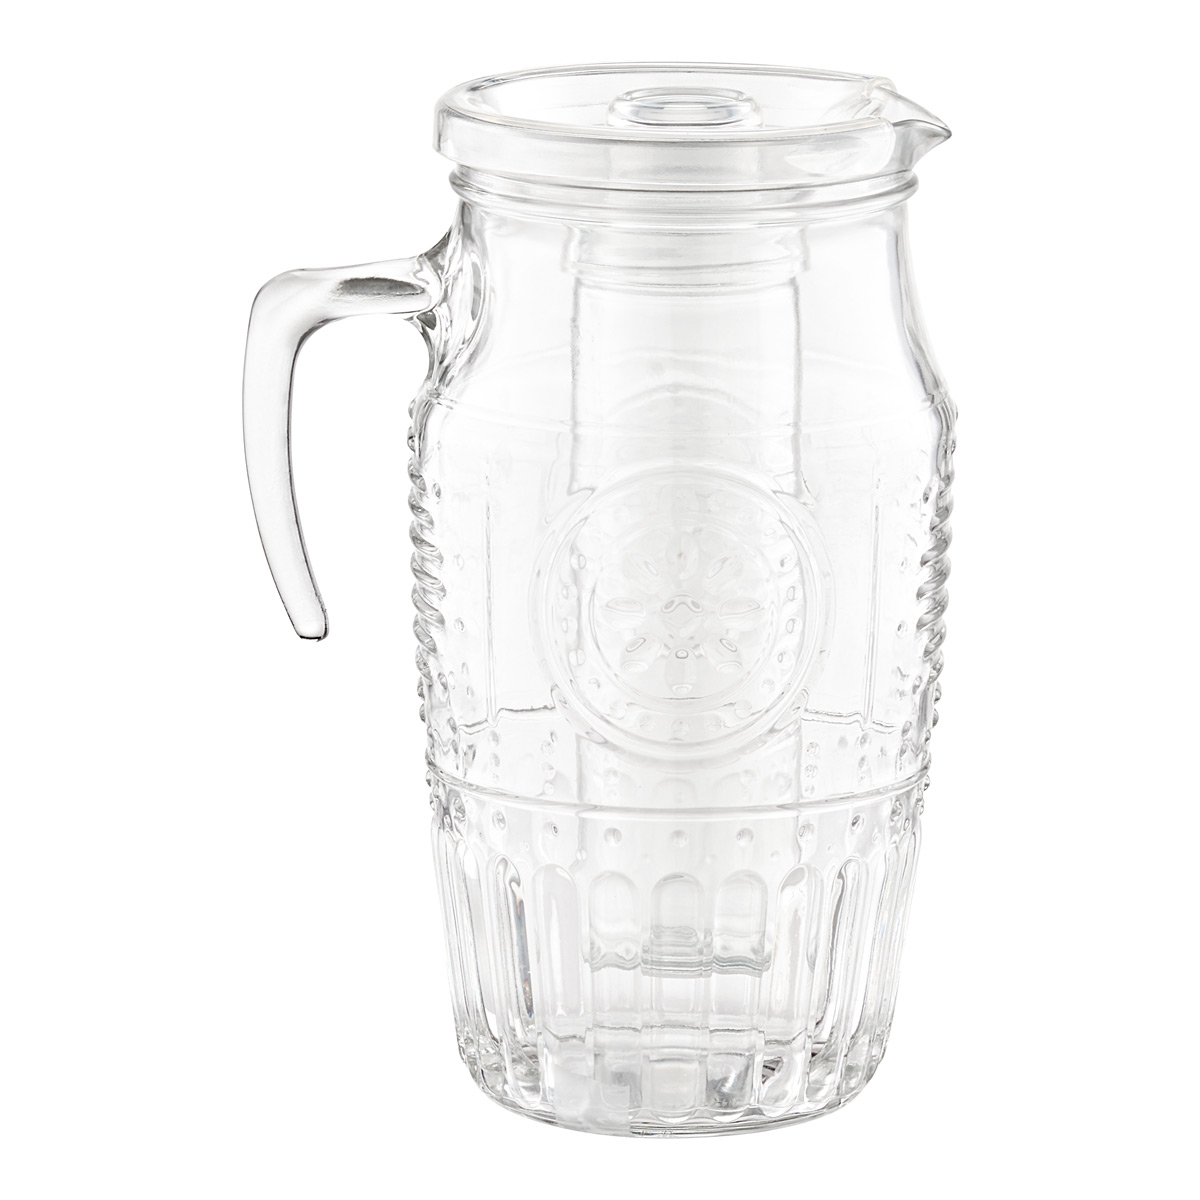 Divine Romantic Glass Carafe Lid 64 Oz Lid Singapore Glass Pitcher Lid Container Store Glass Pitcher Lid Container Store Romantic Glass Carafe houzz 01 Glass Pitcher With Lid